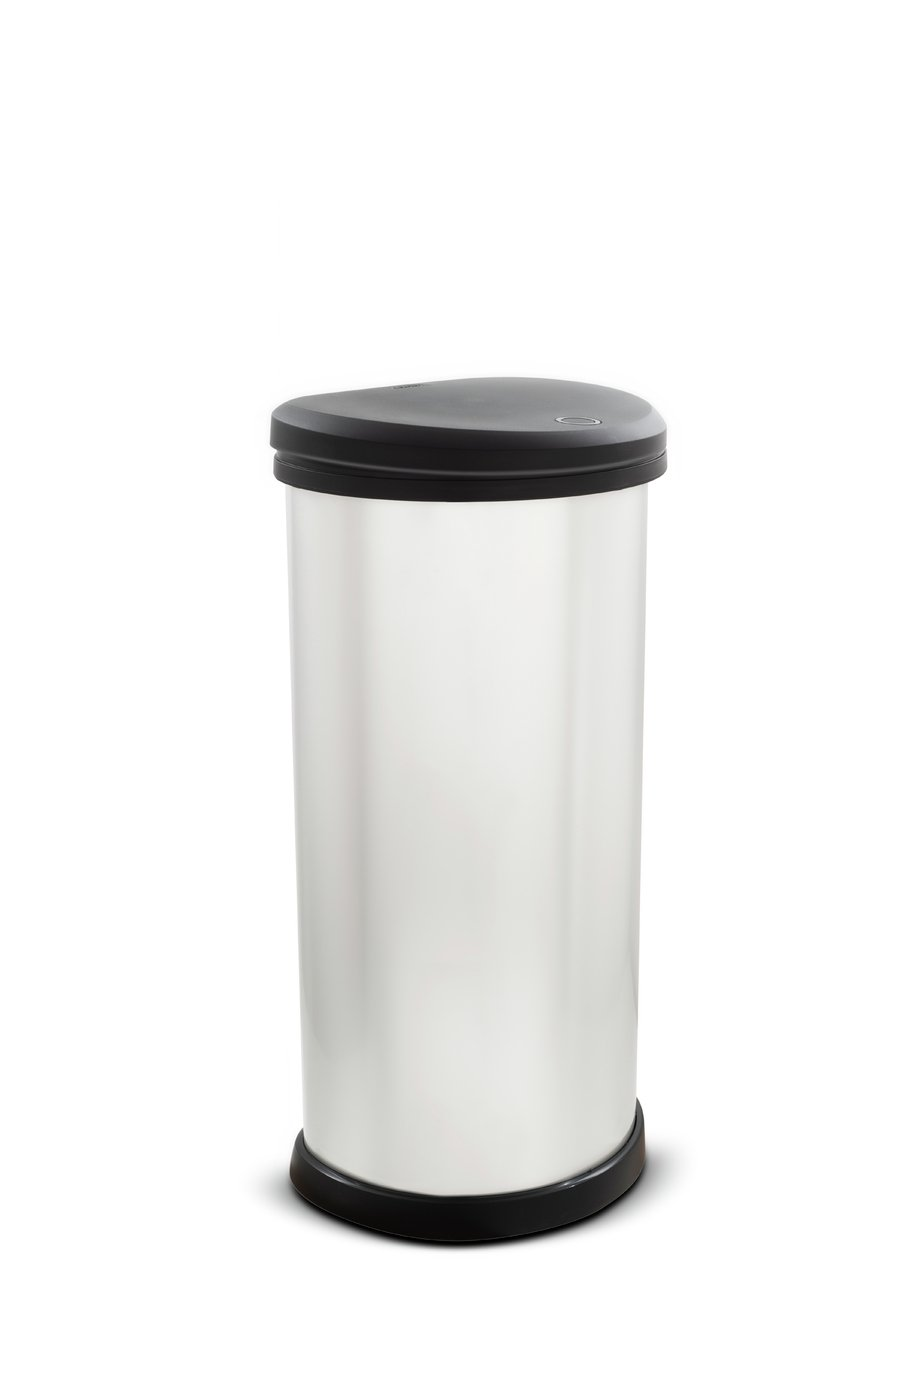 White Kitchen Bin kitchen bins | argos